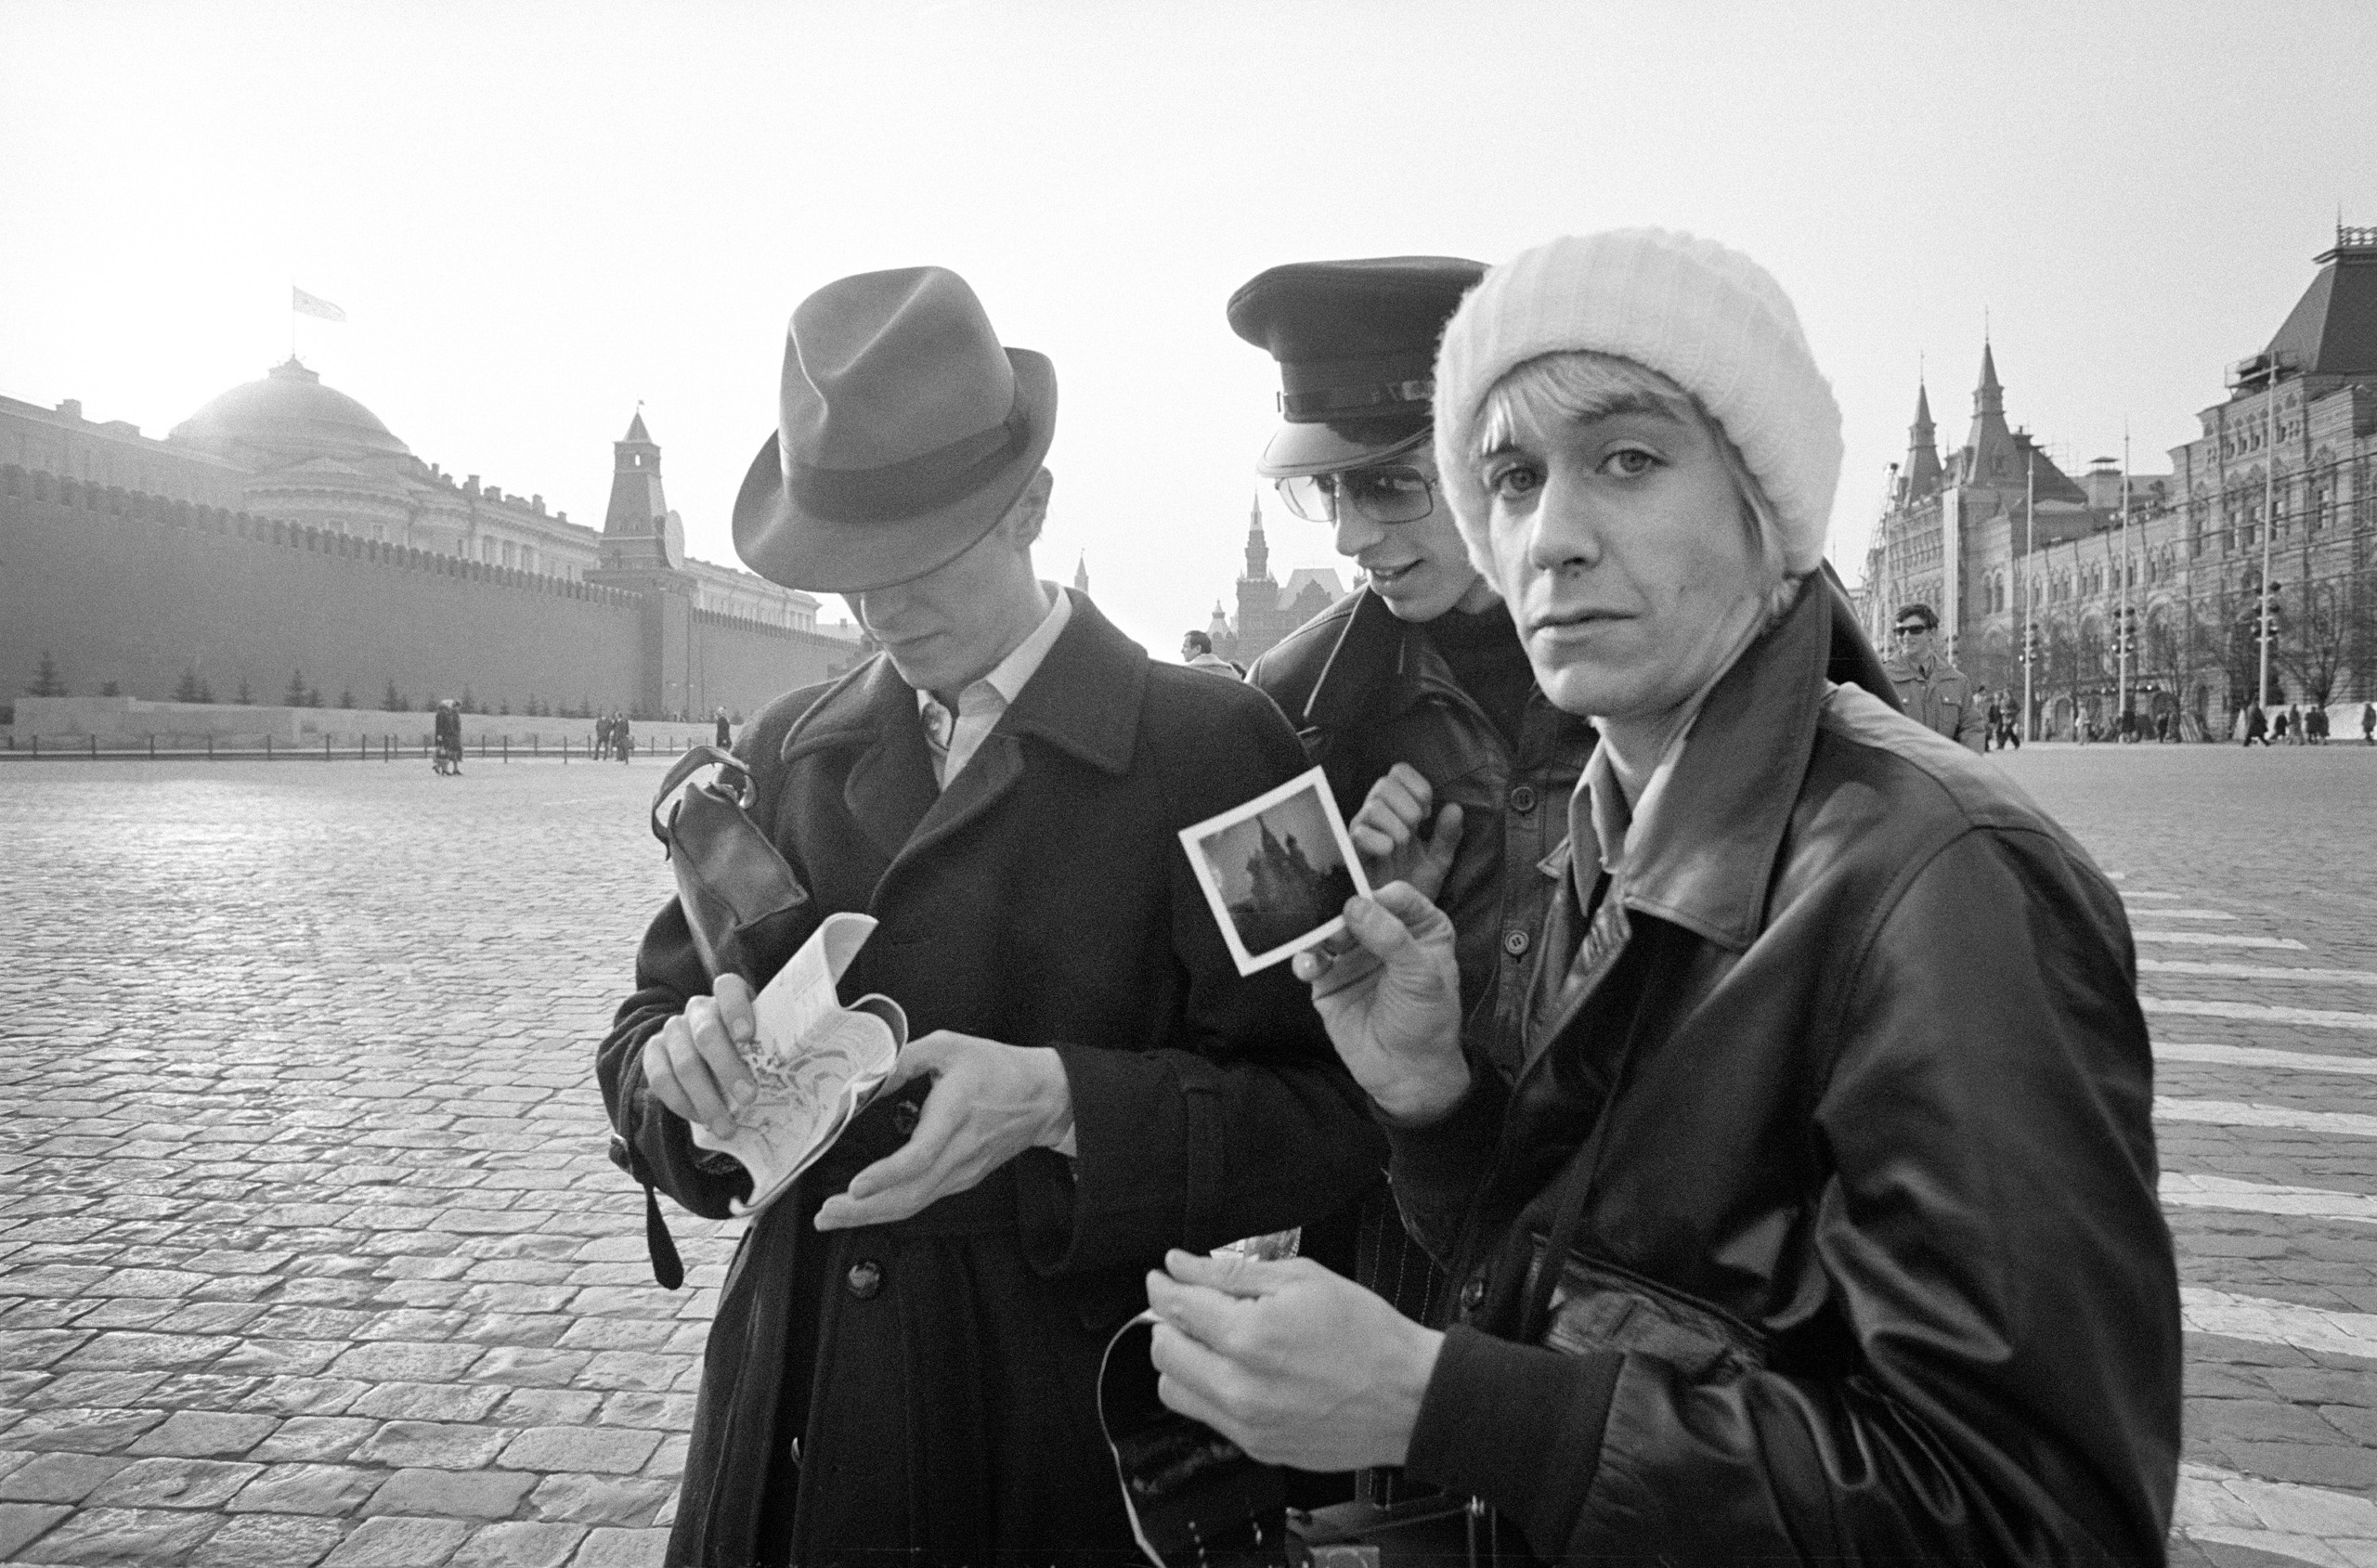 Iggy Pop flashes a Polaroid he'd just taken in Moscow's Red Square. Bowie and his tour manager, Pat Gibbons, are in the background.